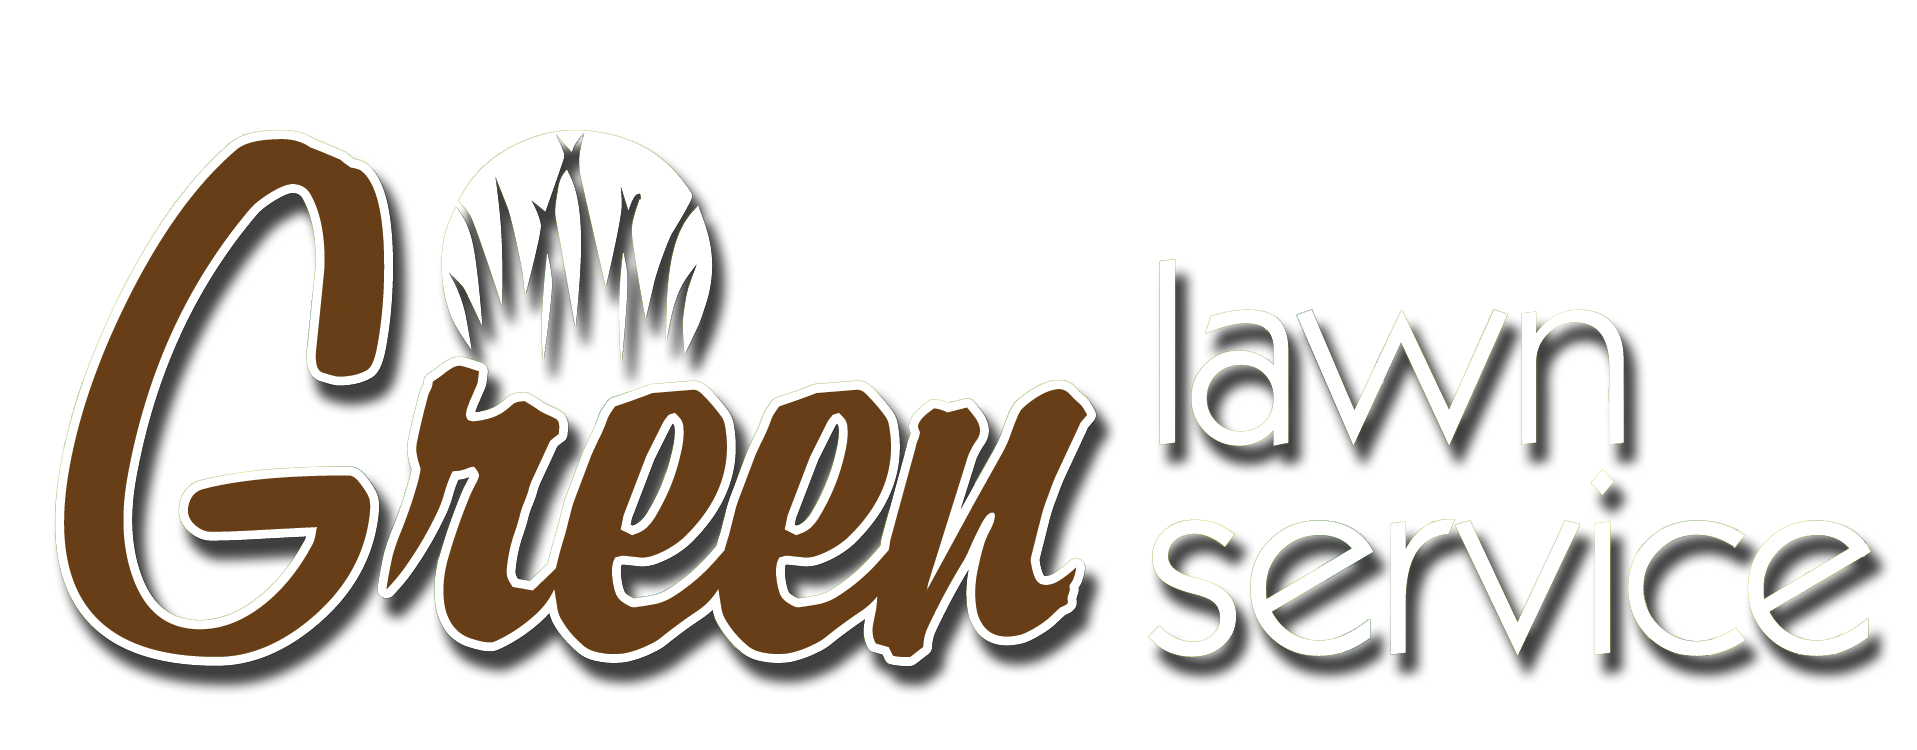 Green Lawn Service Tennessee